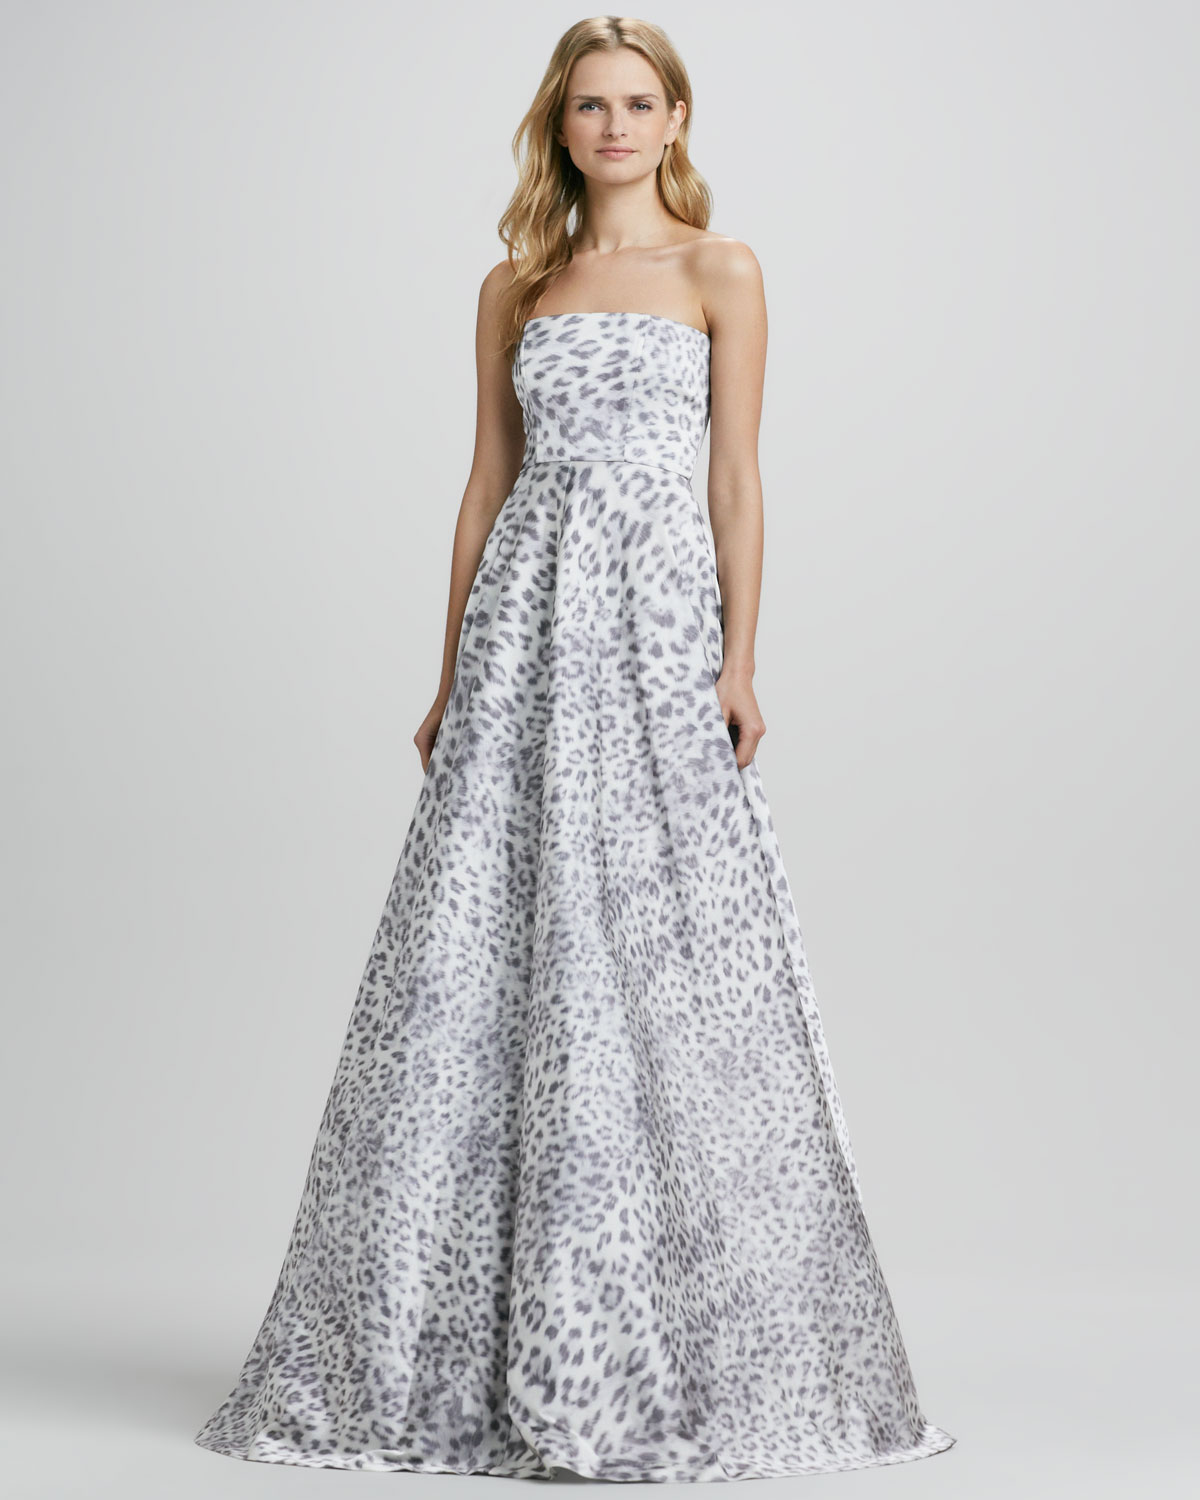 Lyst - Alexis Malene Leopard Strapless Ball Gown